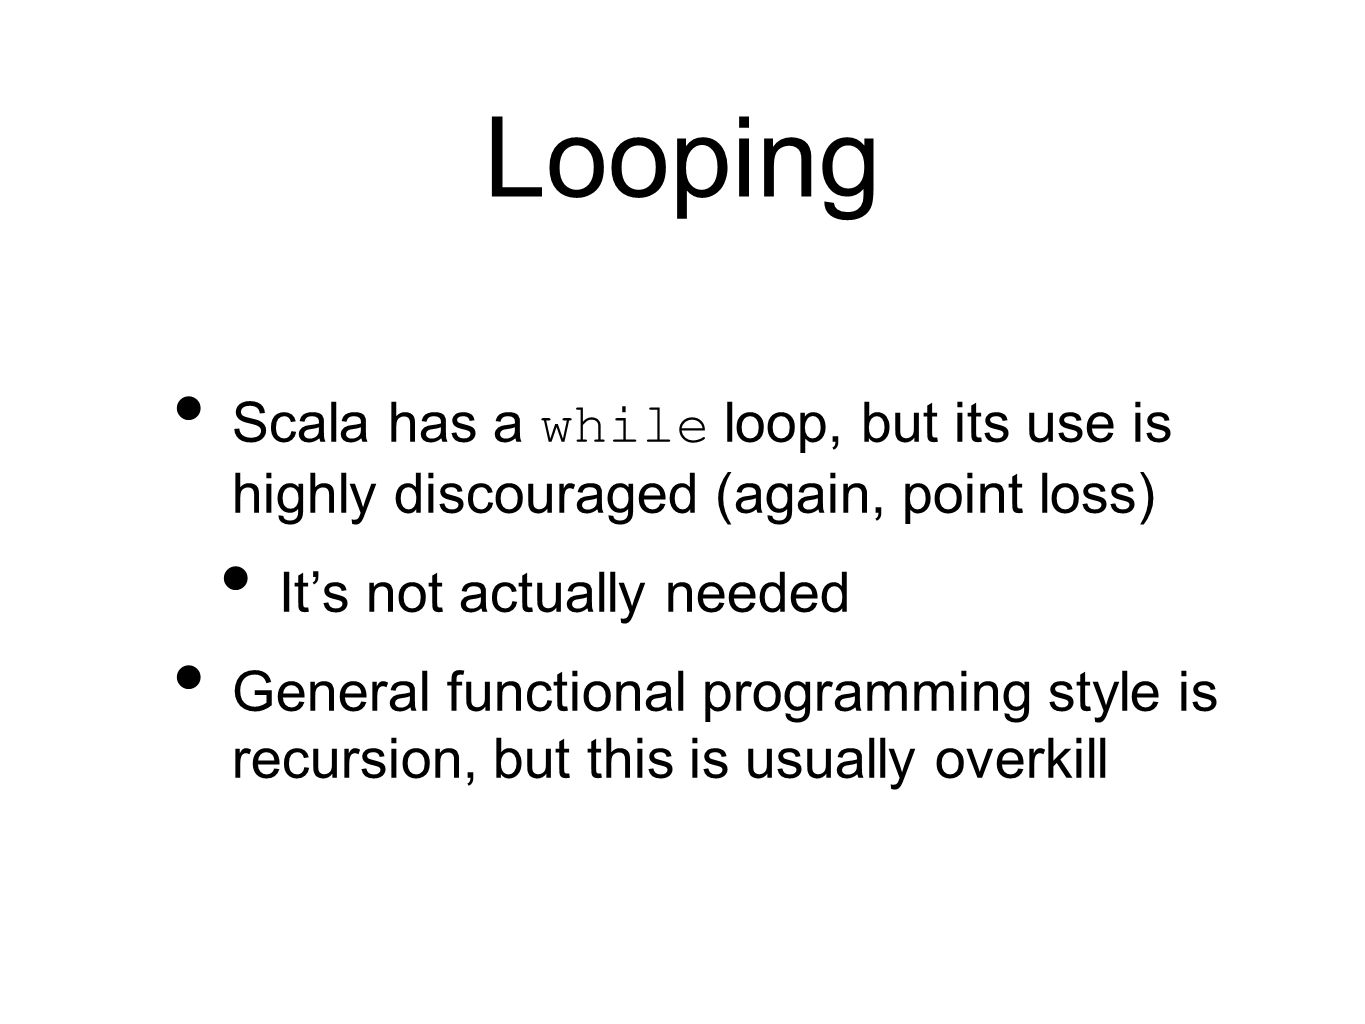 Looping Scala has a while loop, but its use is highly discouraged (again, point loss) It's not actually needed General functional programming style is recursion, but this is usually overkill